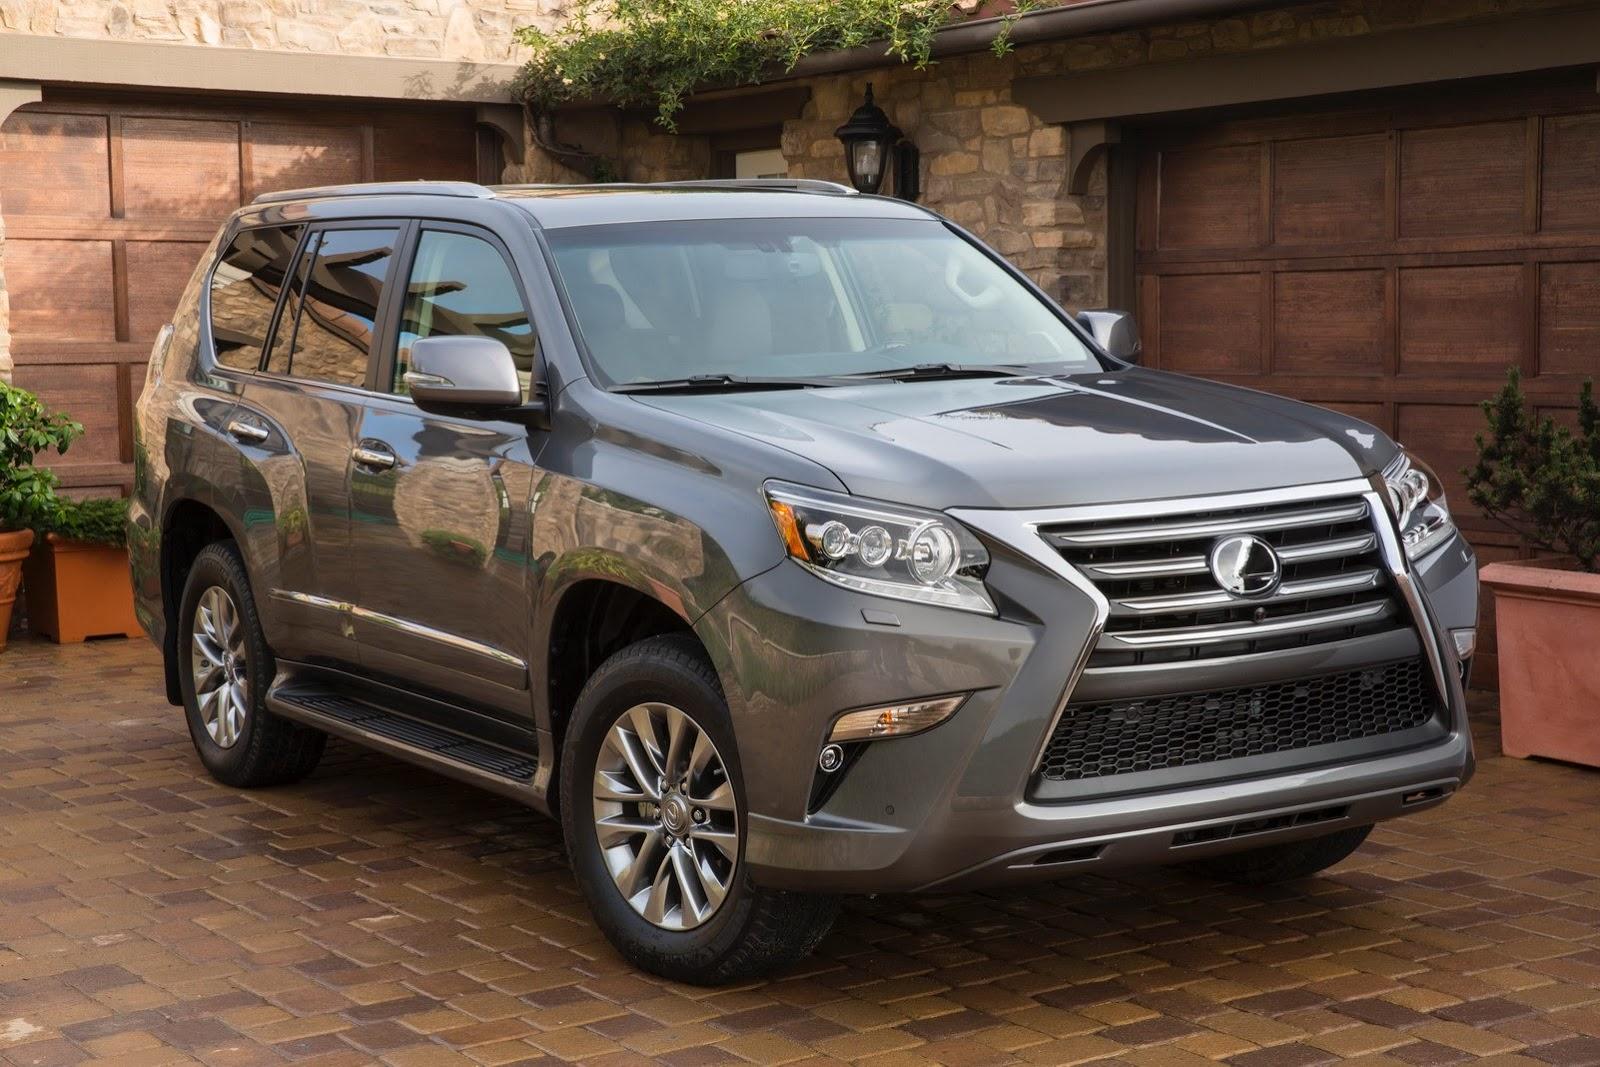 Lexus Gx   pictures, information and specs - Auto-Database.com